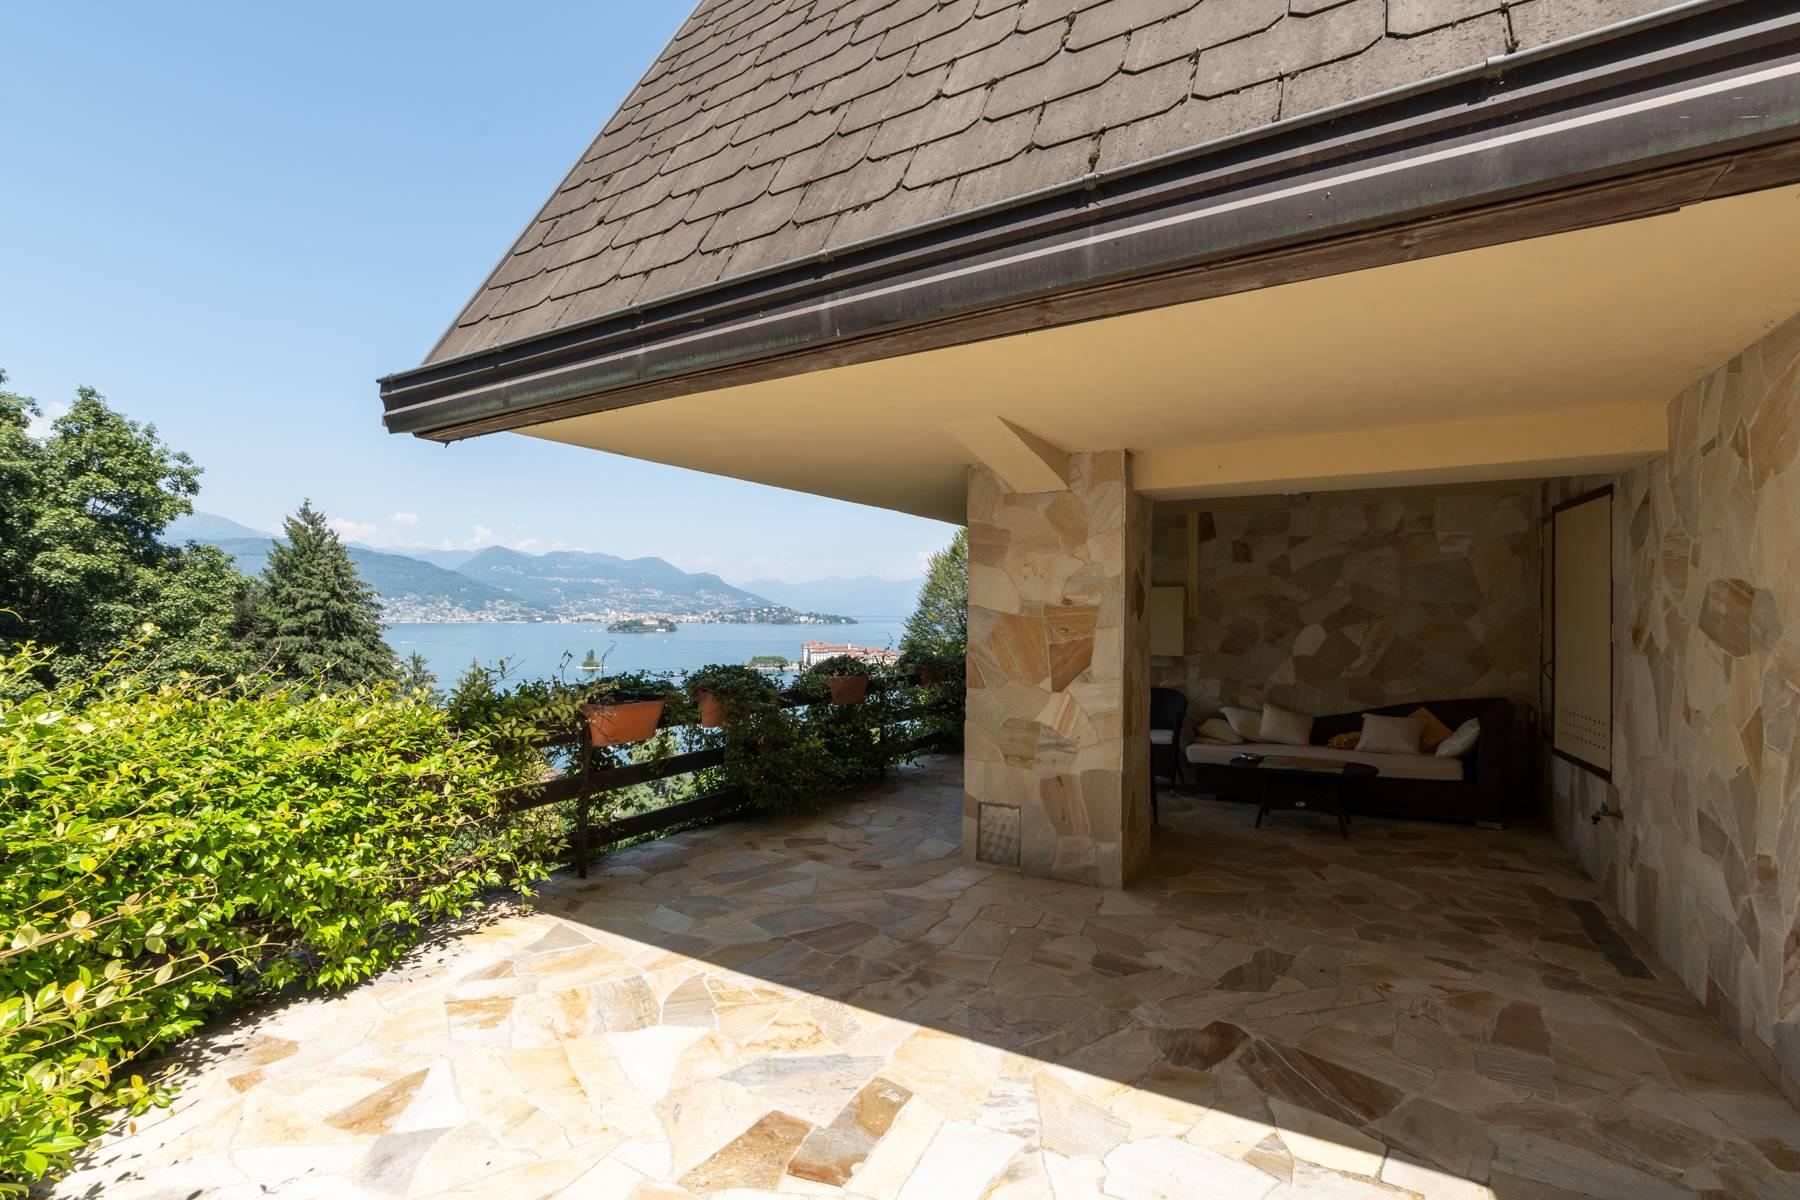 1960s style villa with breathtaking view of the Borromean Islands - 11